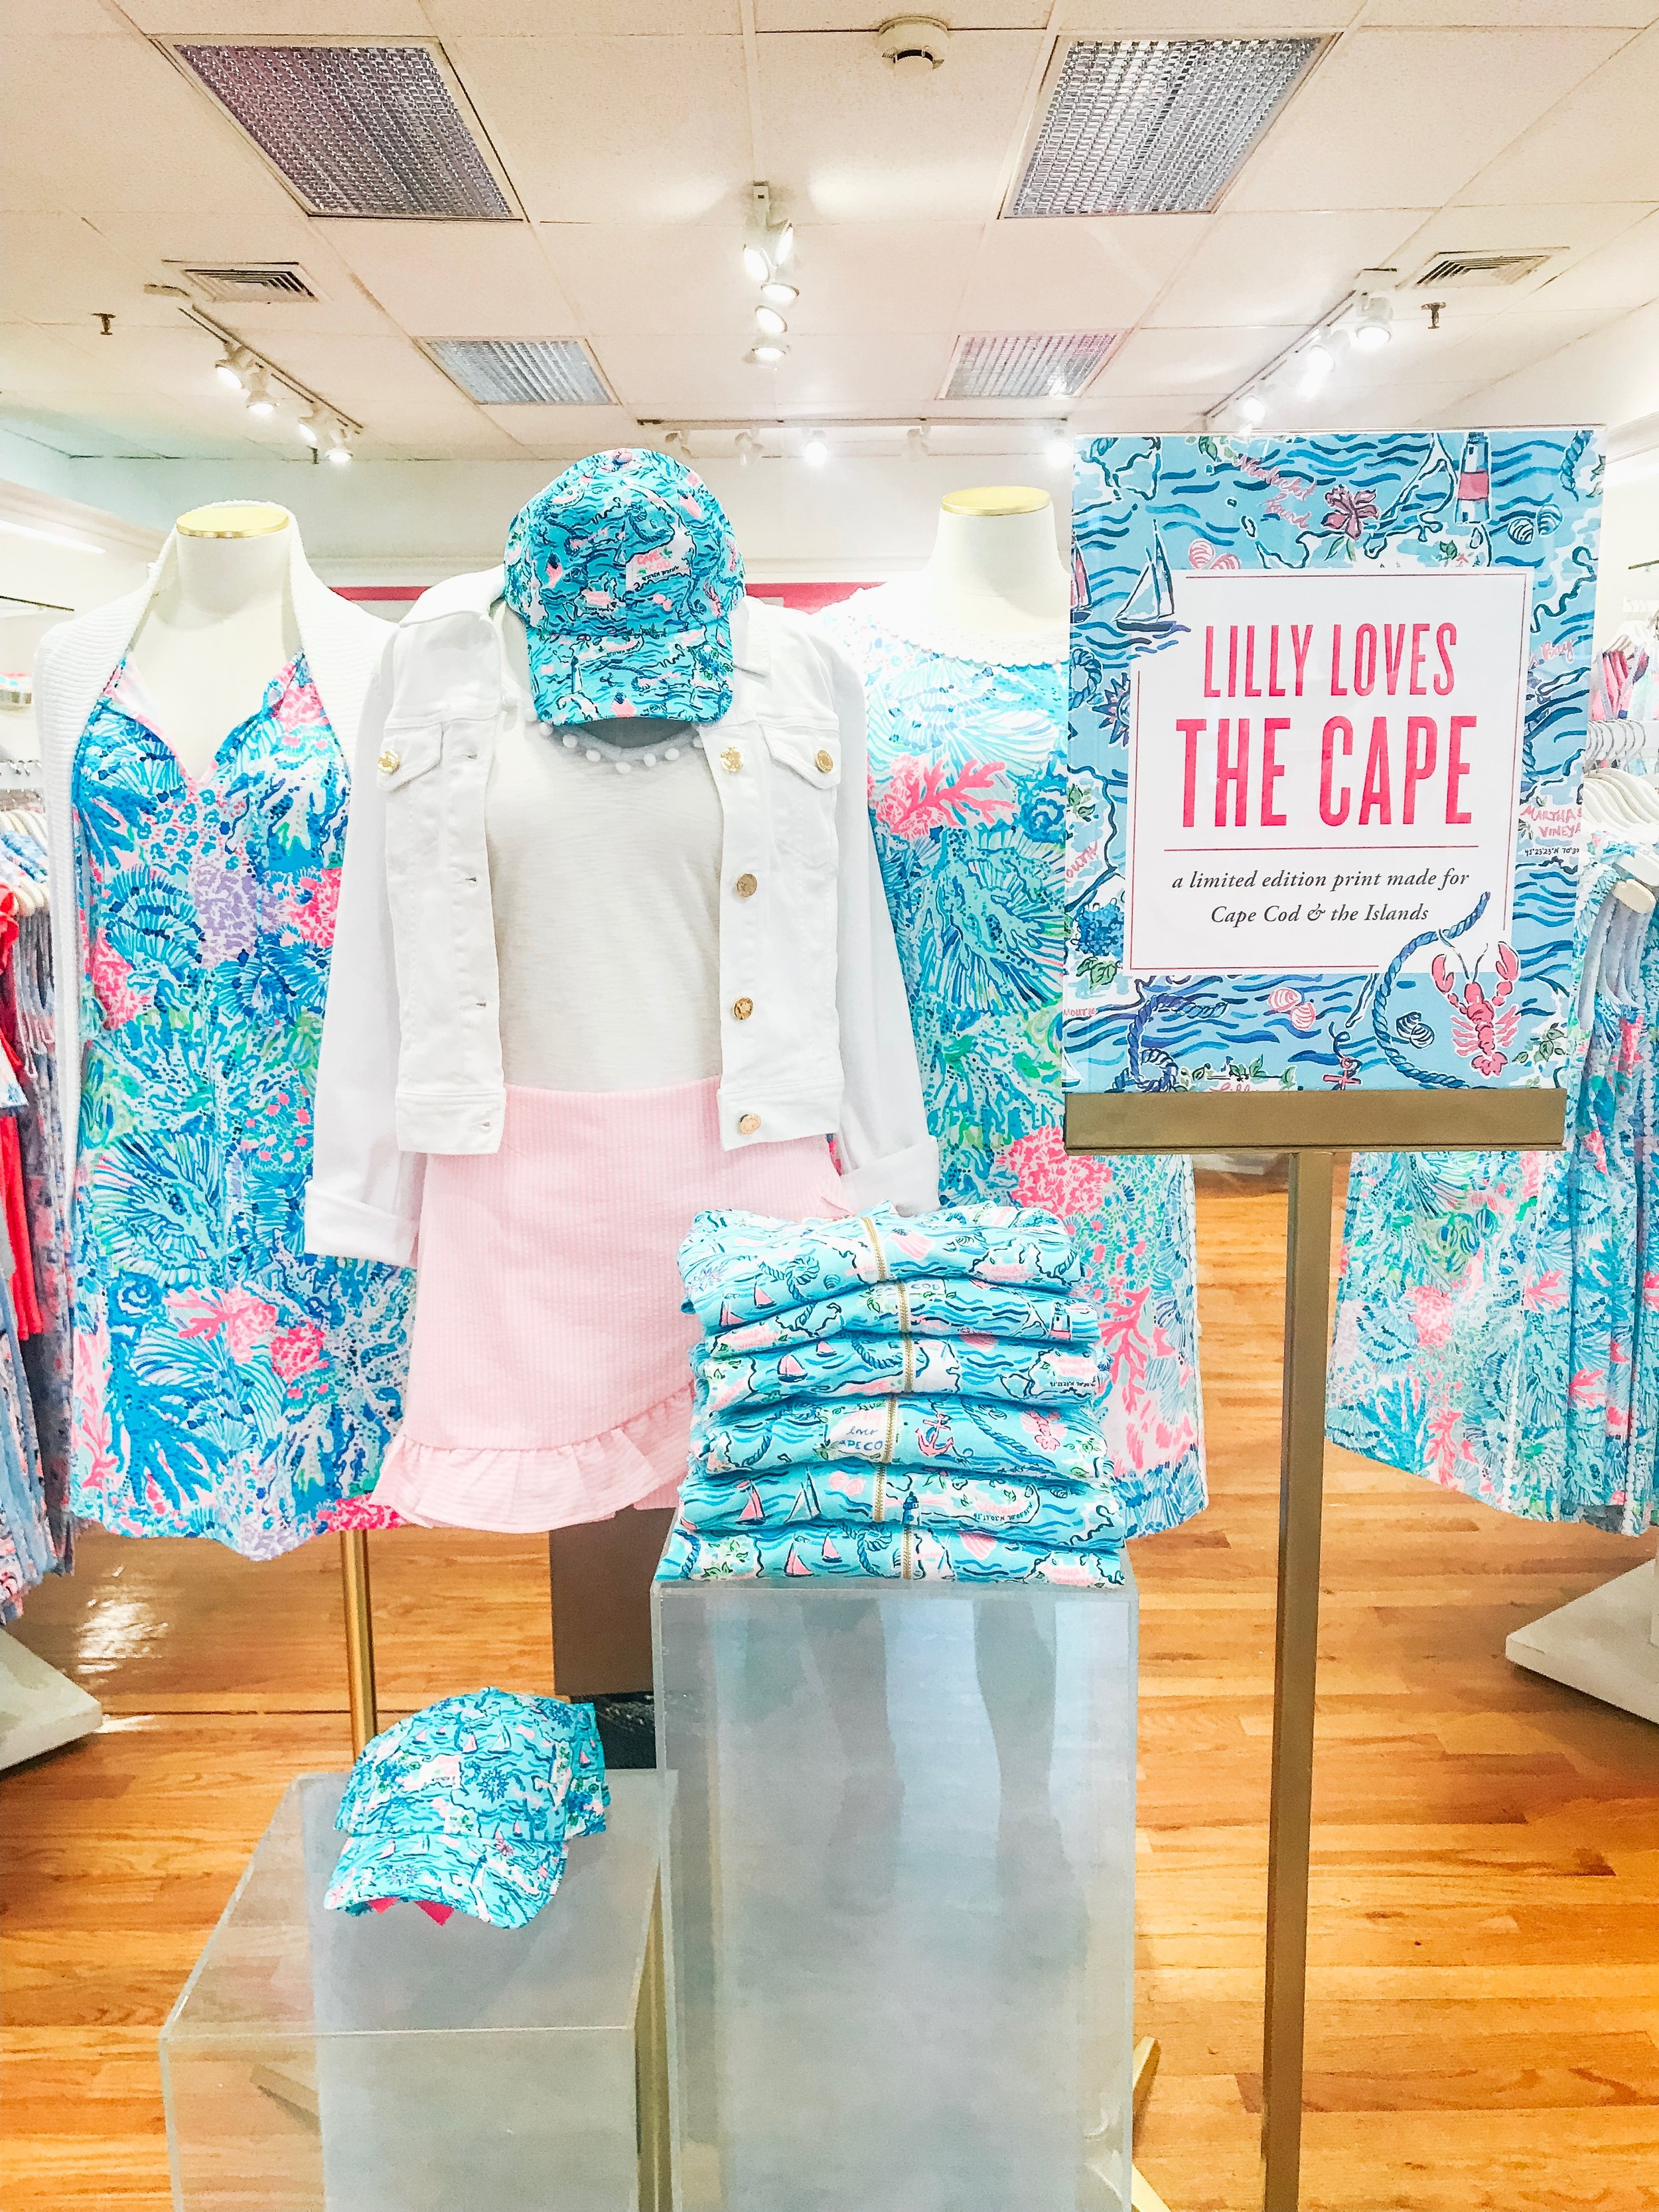 how cute is the Lilly pulitzer cape cod collection?!